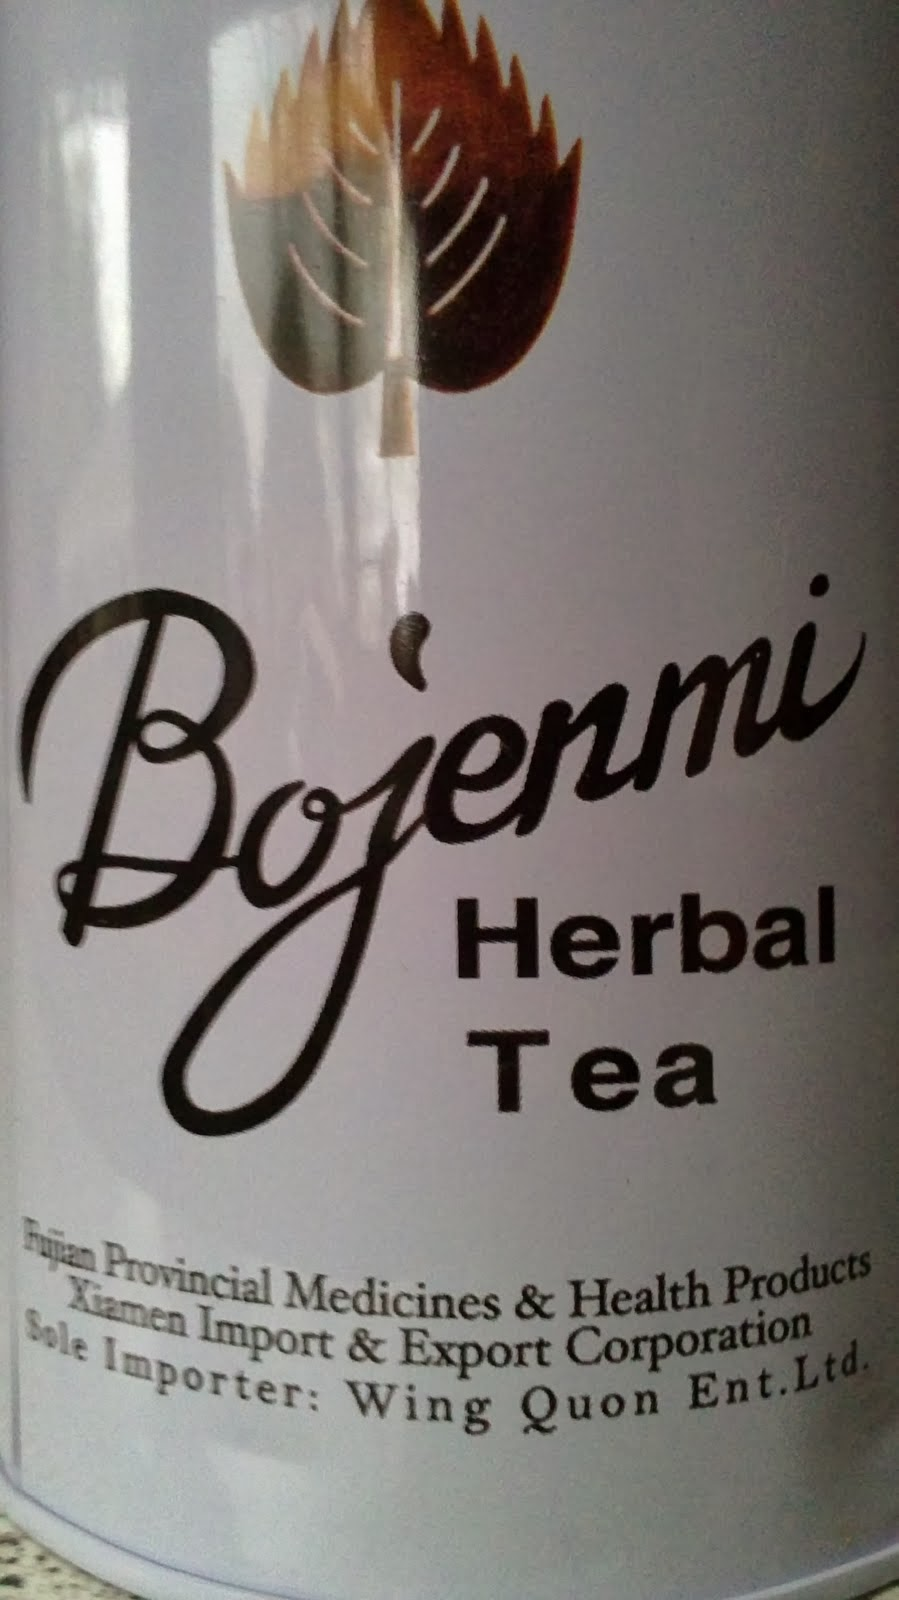 Bojenmi herbal tea - It Is Interesting To Know That Malt Shen Chu Cratageus Raphanus Citrus Peel And Pogostemon Are Used To Invigorate The Digestion Of Foods In The Stomach